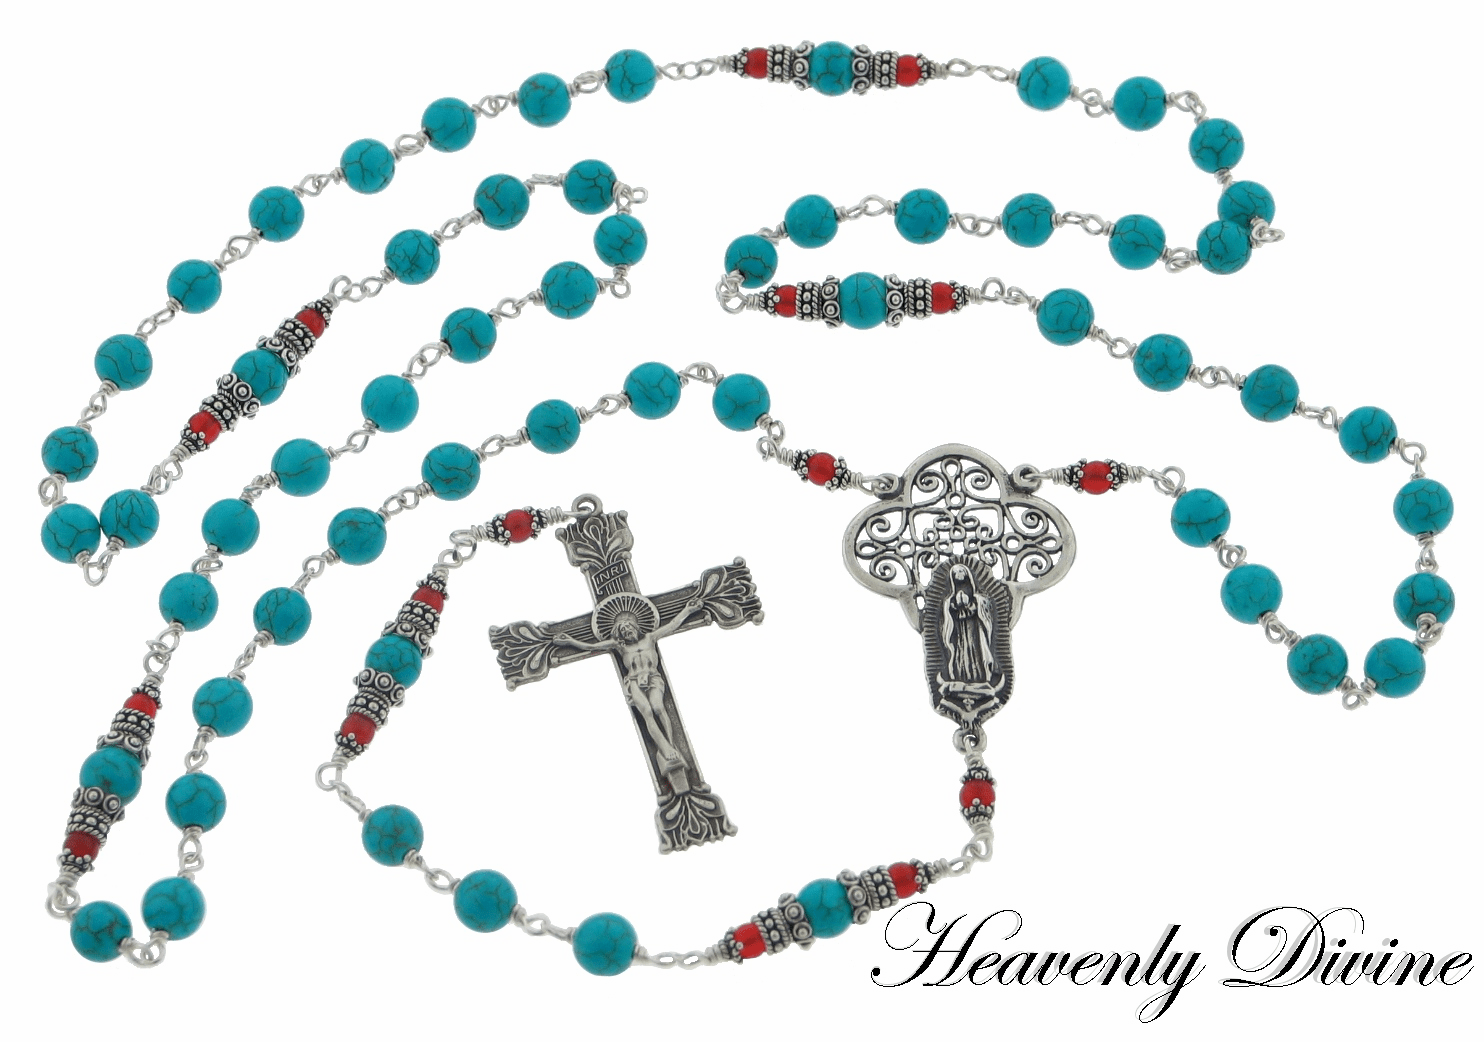 Handmade Our Lady of Guadalupe Turquoise & Carnelian Sterling Silver Wire-Wrapped Rosary by Heavenly Divine